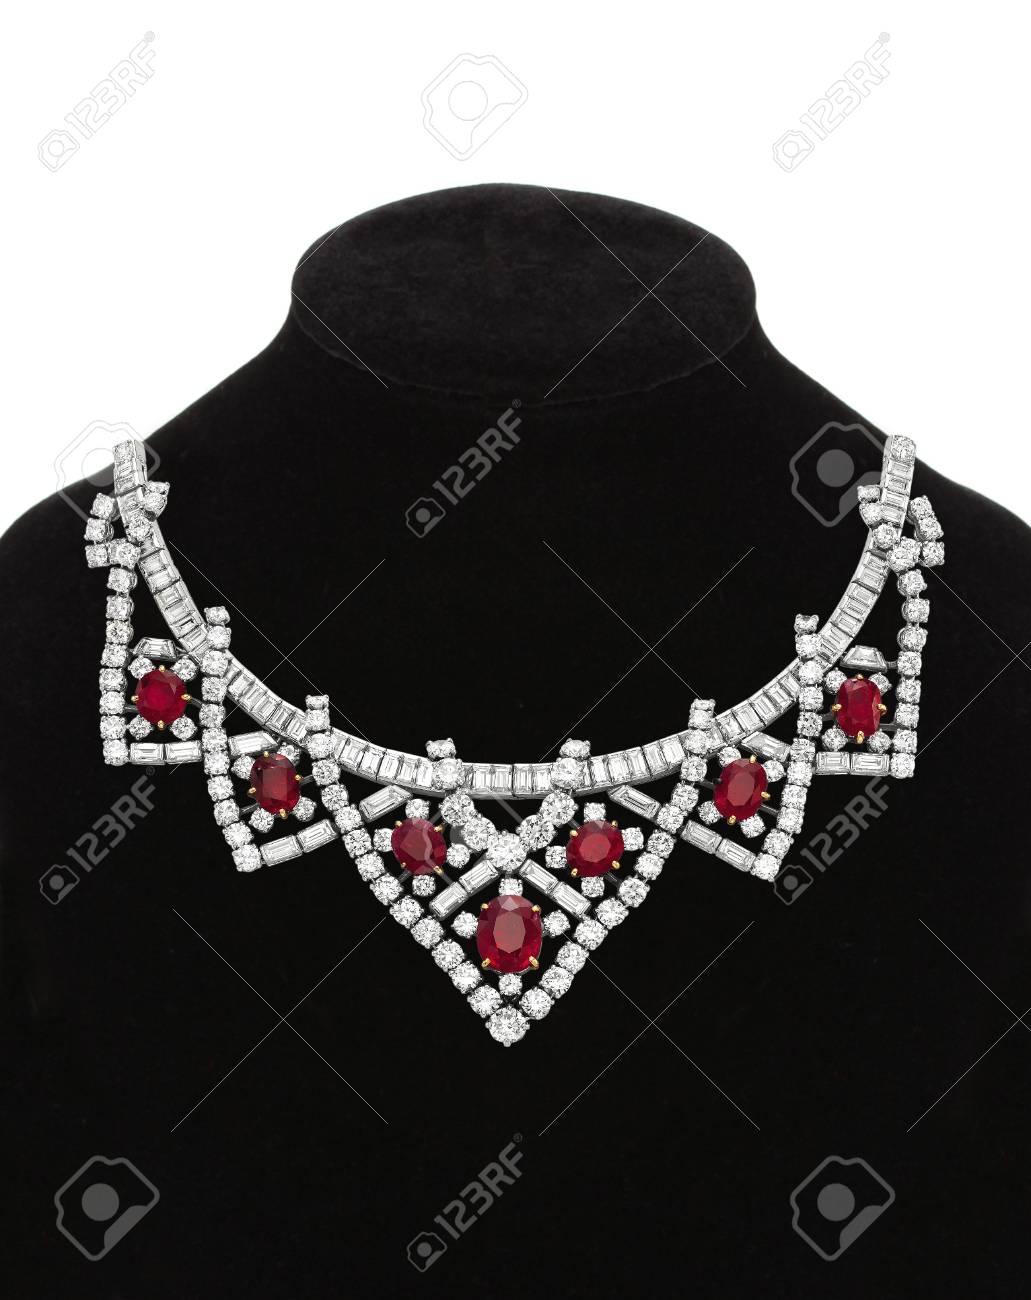 Pendant with red gem stones on black mannequin isolated on white Stock Photo - 17859729